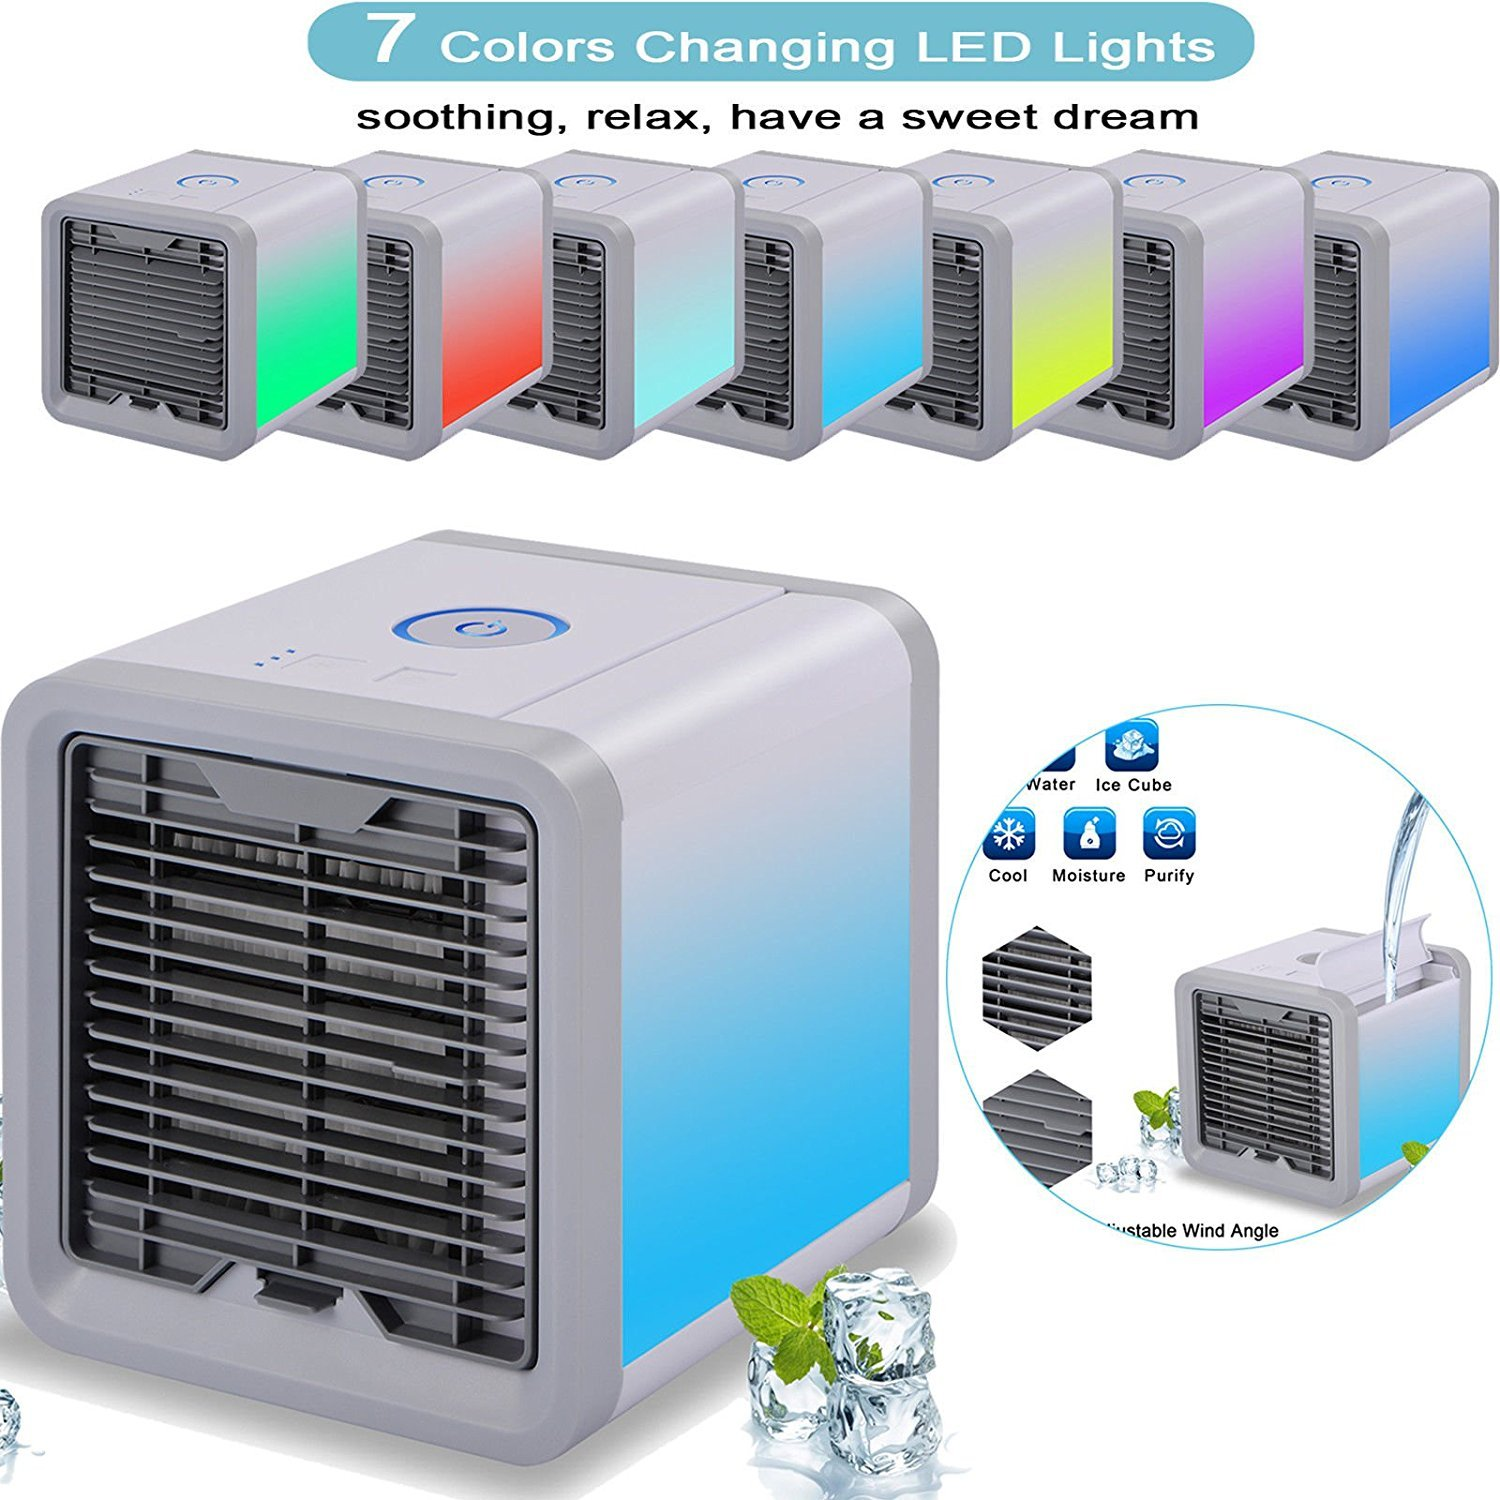 Upower Portable Air Conditioner, 3 in 1 Mini USB Personal Space Air Cooler, Humidifier and Purifier, Desktop Cooling Fan with 3 Speeds and 7 Colors LED Night Light for Office Home Outdoor Travel